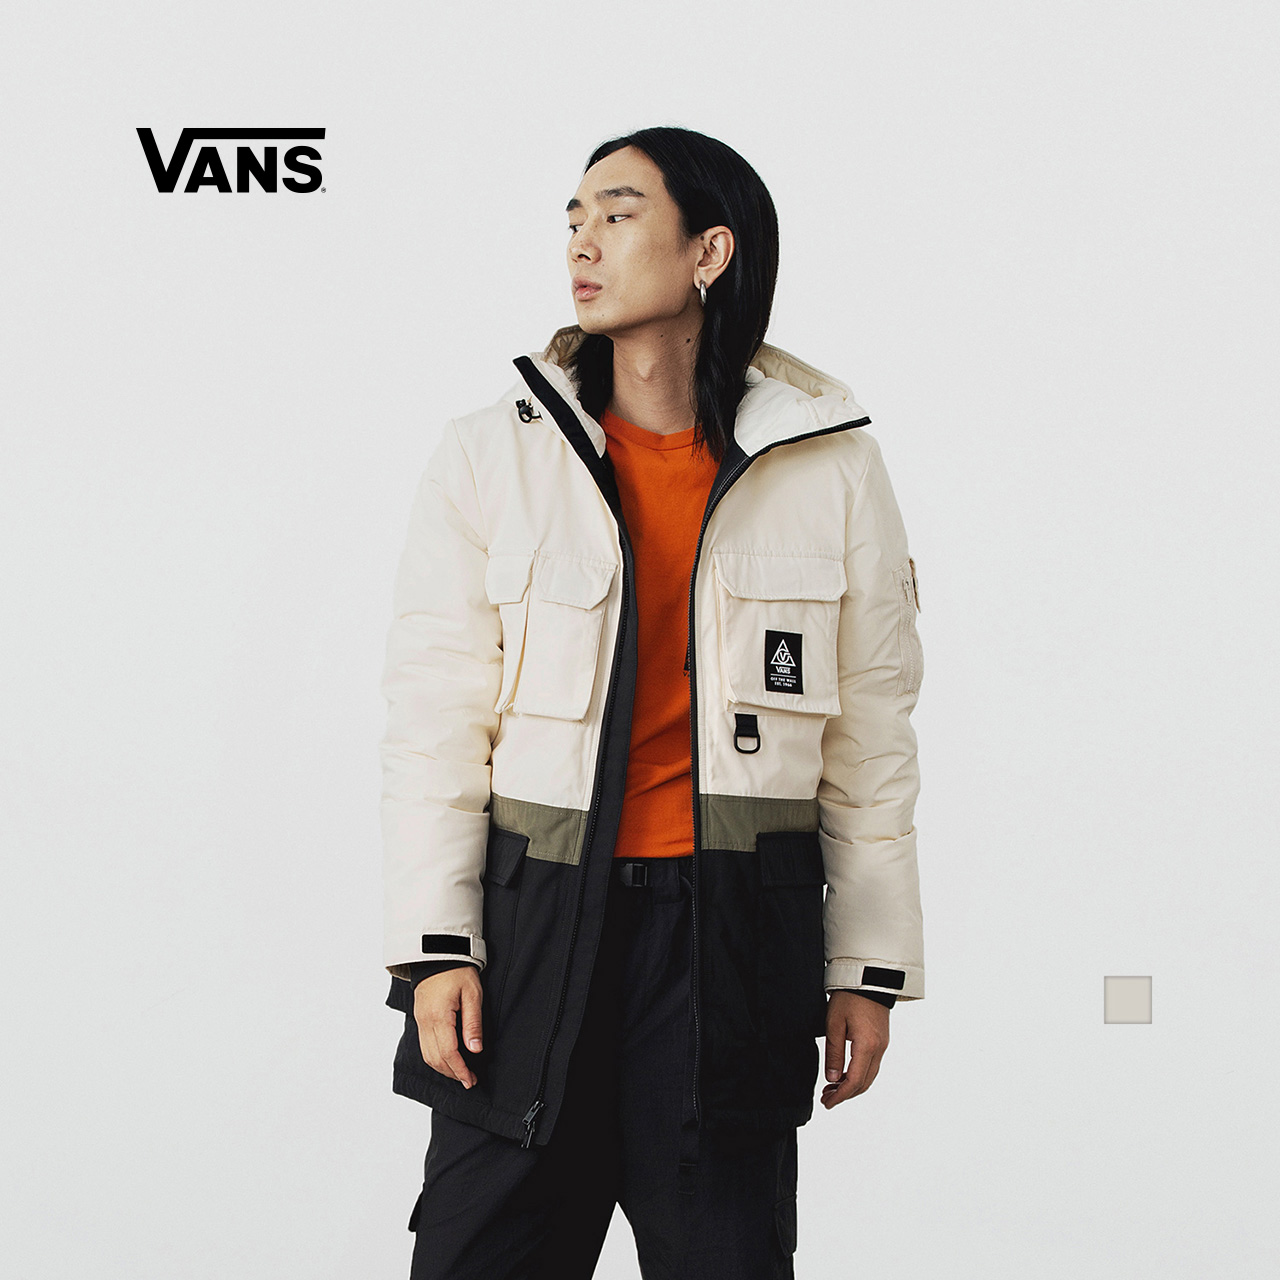 Vans Vans official white men and women couples winter warm down jacket jacket